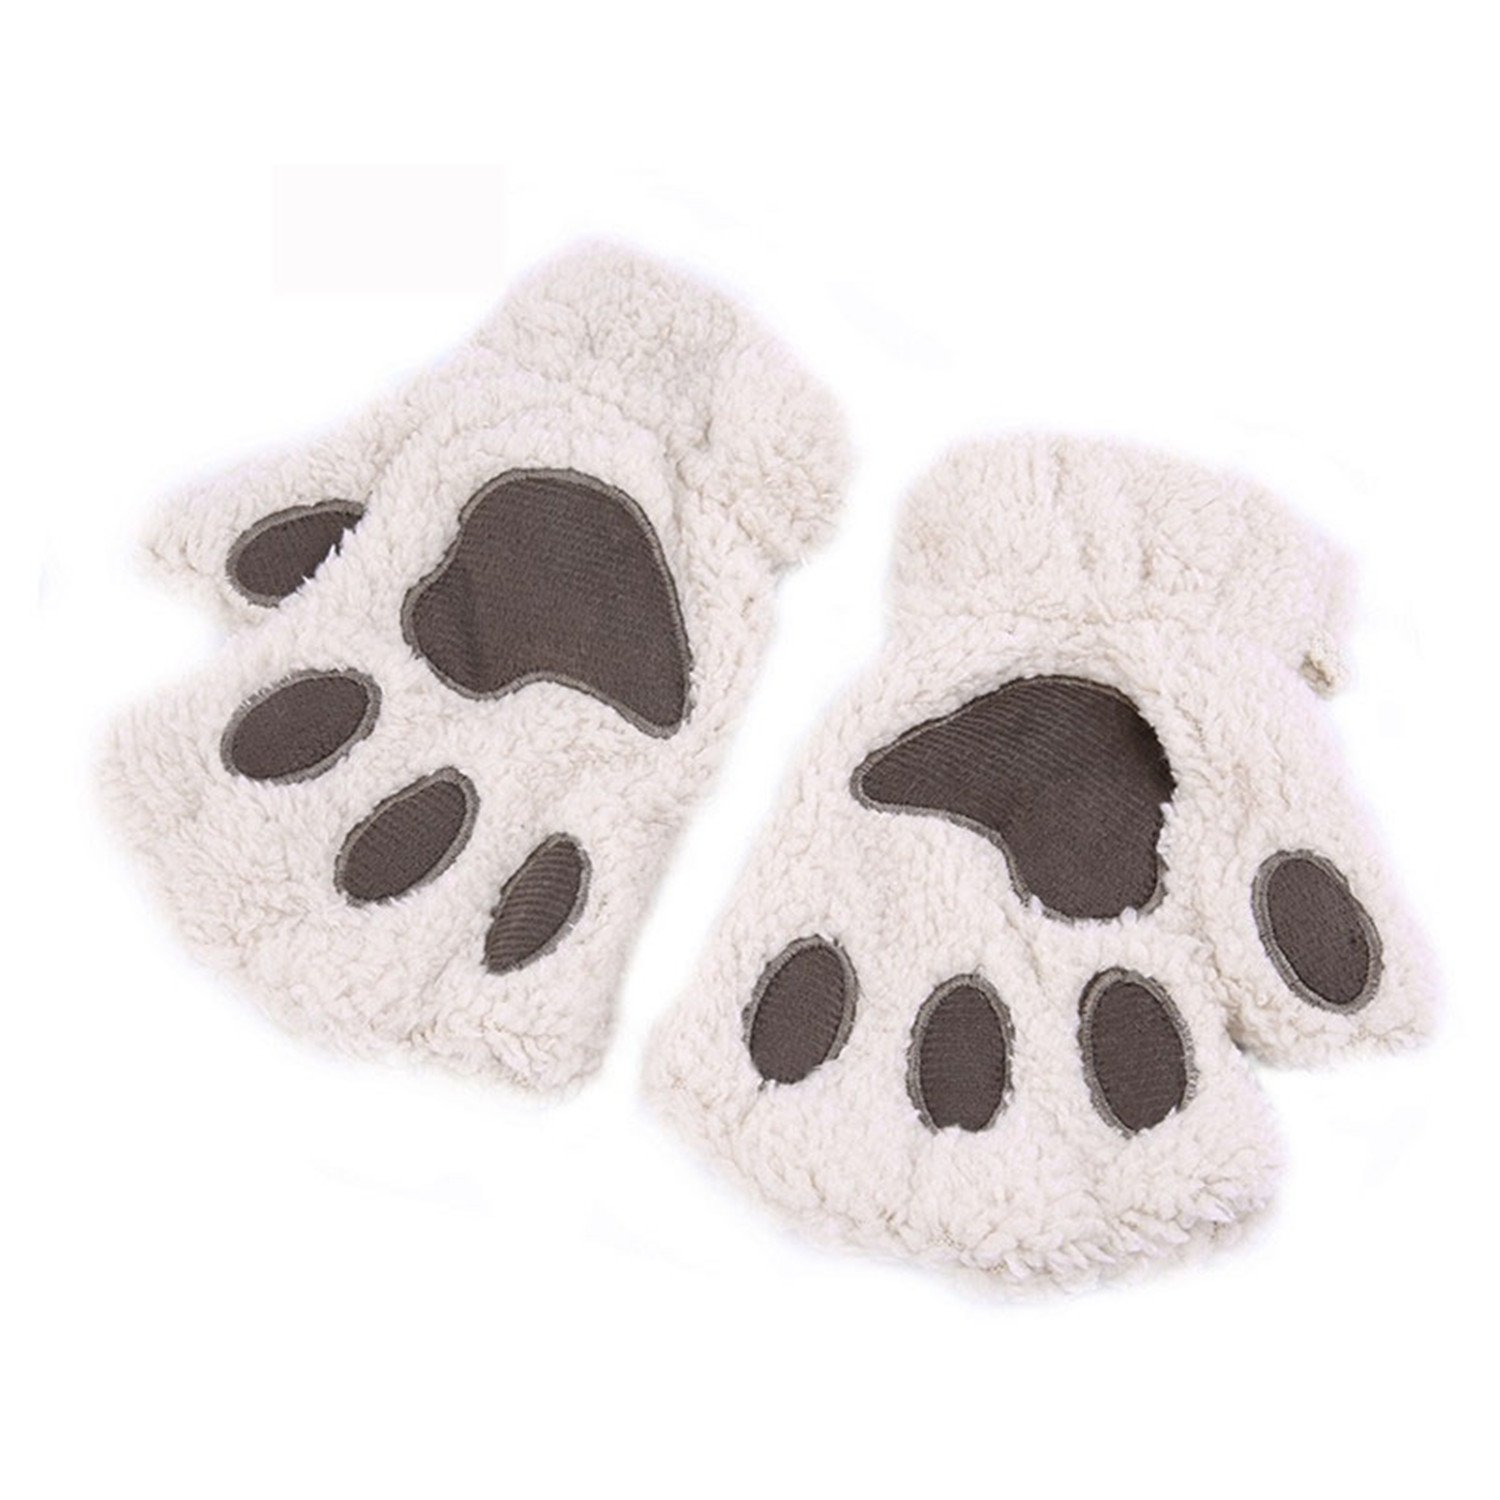 Better Annie Winter Keep Warm Cute Women Gloves Fluffy Bear Plush Paw Glove Girl Novelty Soft Half Covered Mittens Gloves beige